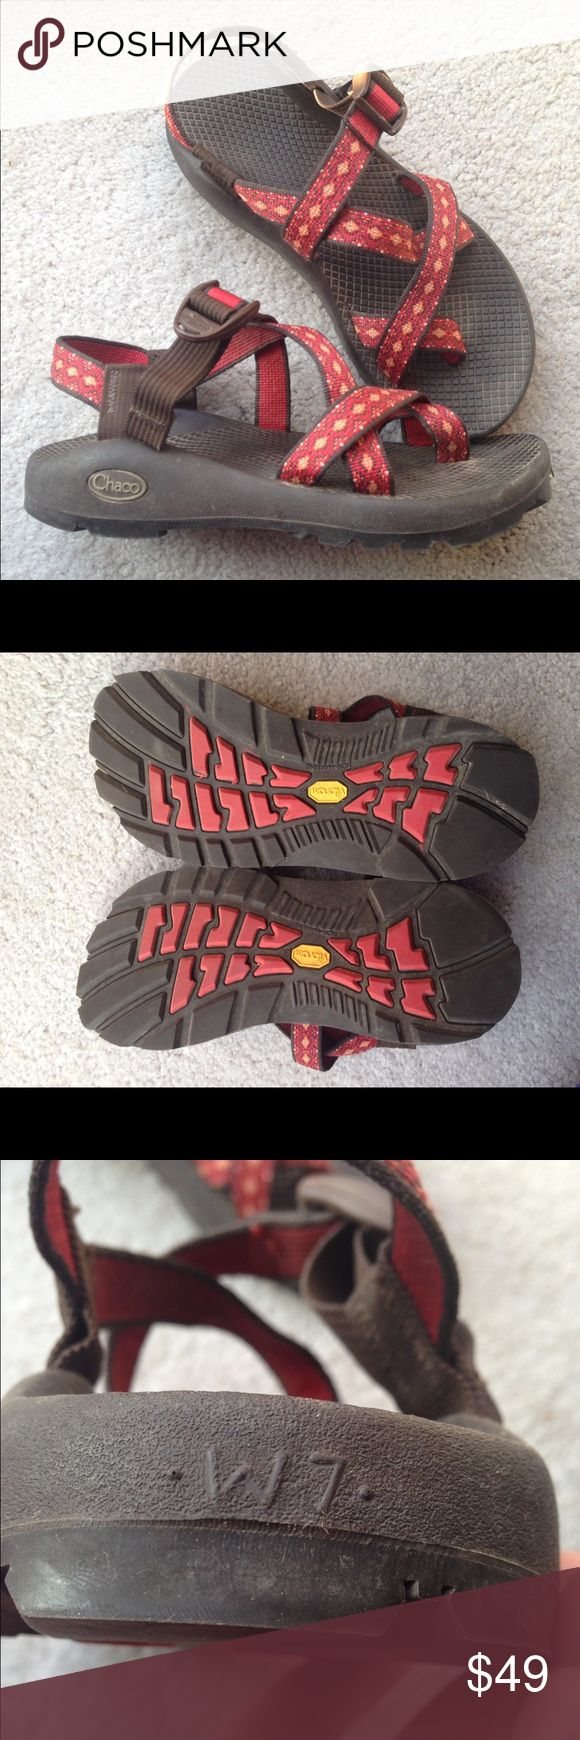 Chaco's Women's Chaco's in great shape lots of life to be had. Women's size 7 Chaco Shoes Sandals